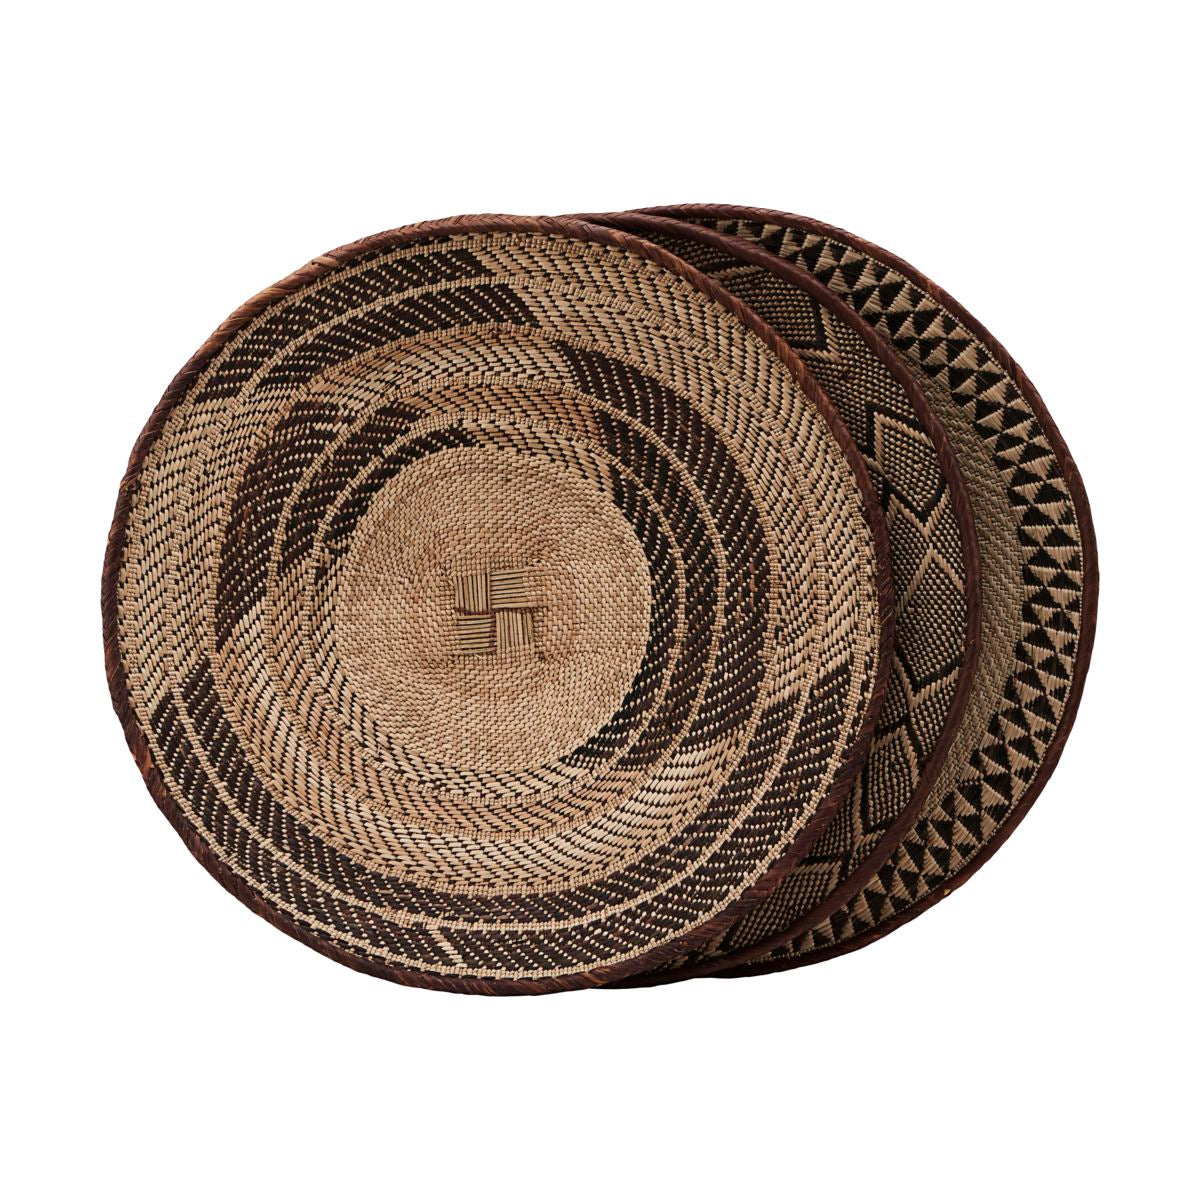 Decorative Shallow Hand Woven Basket in Large